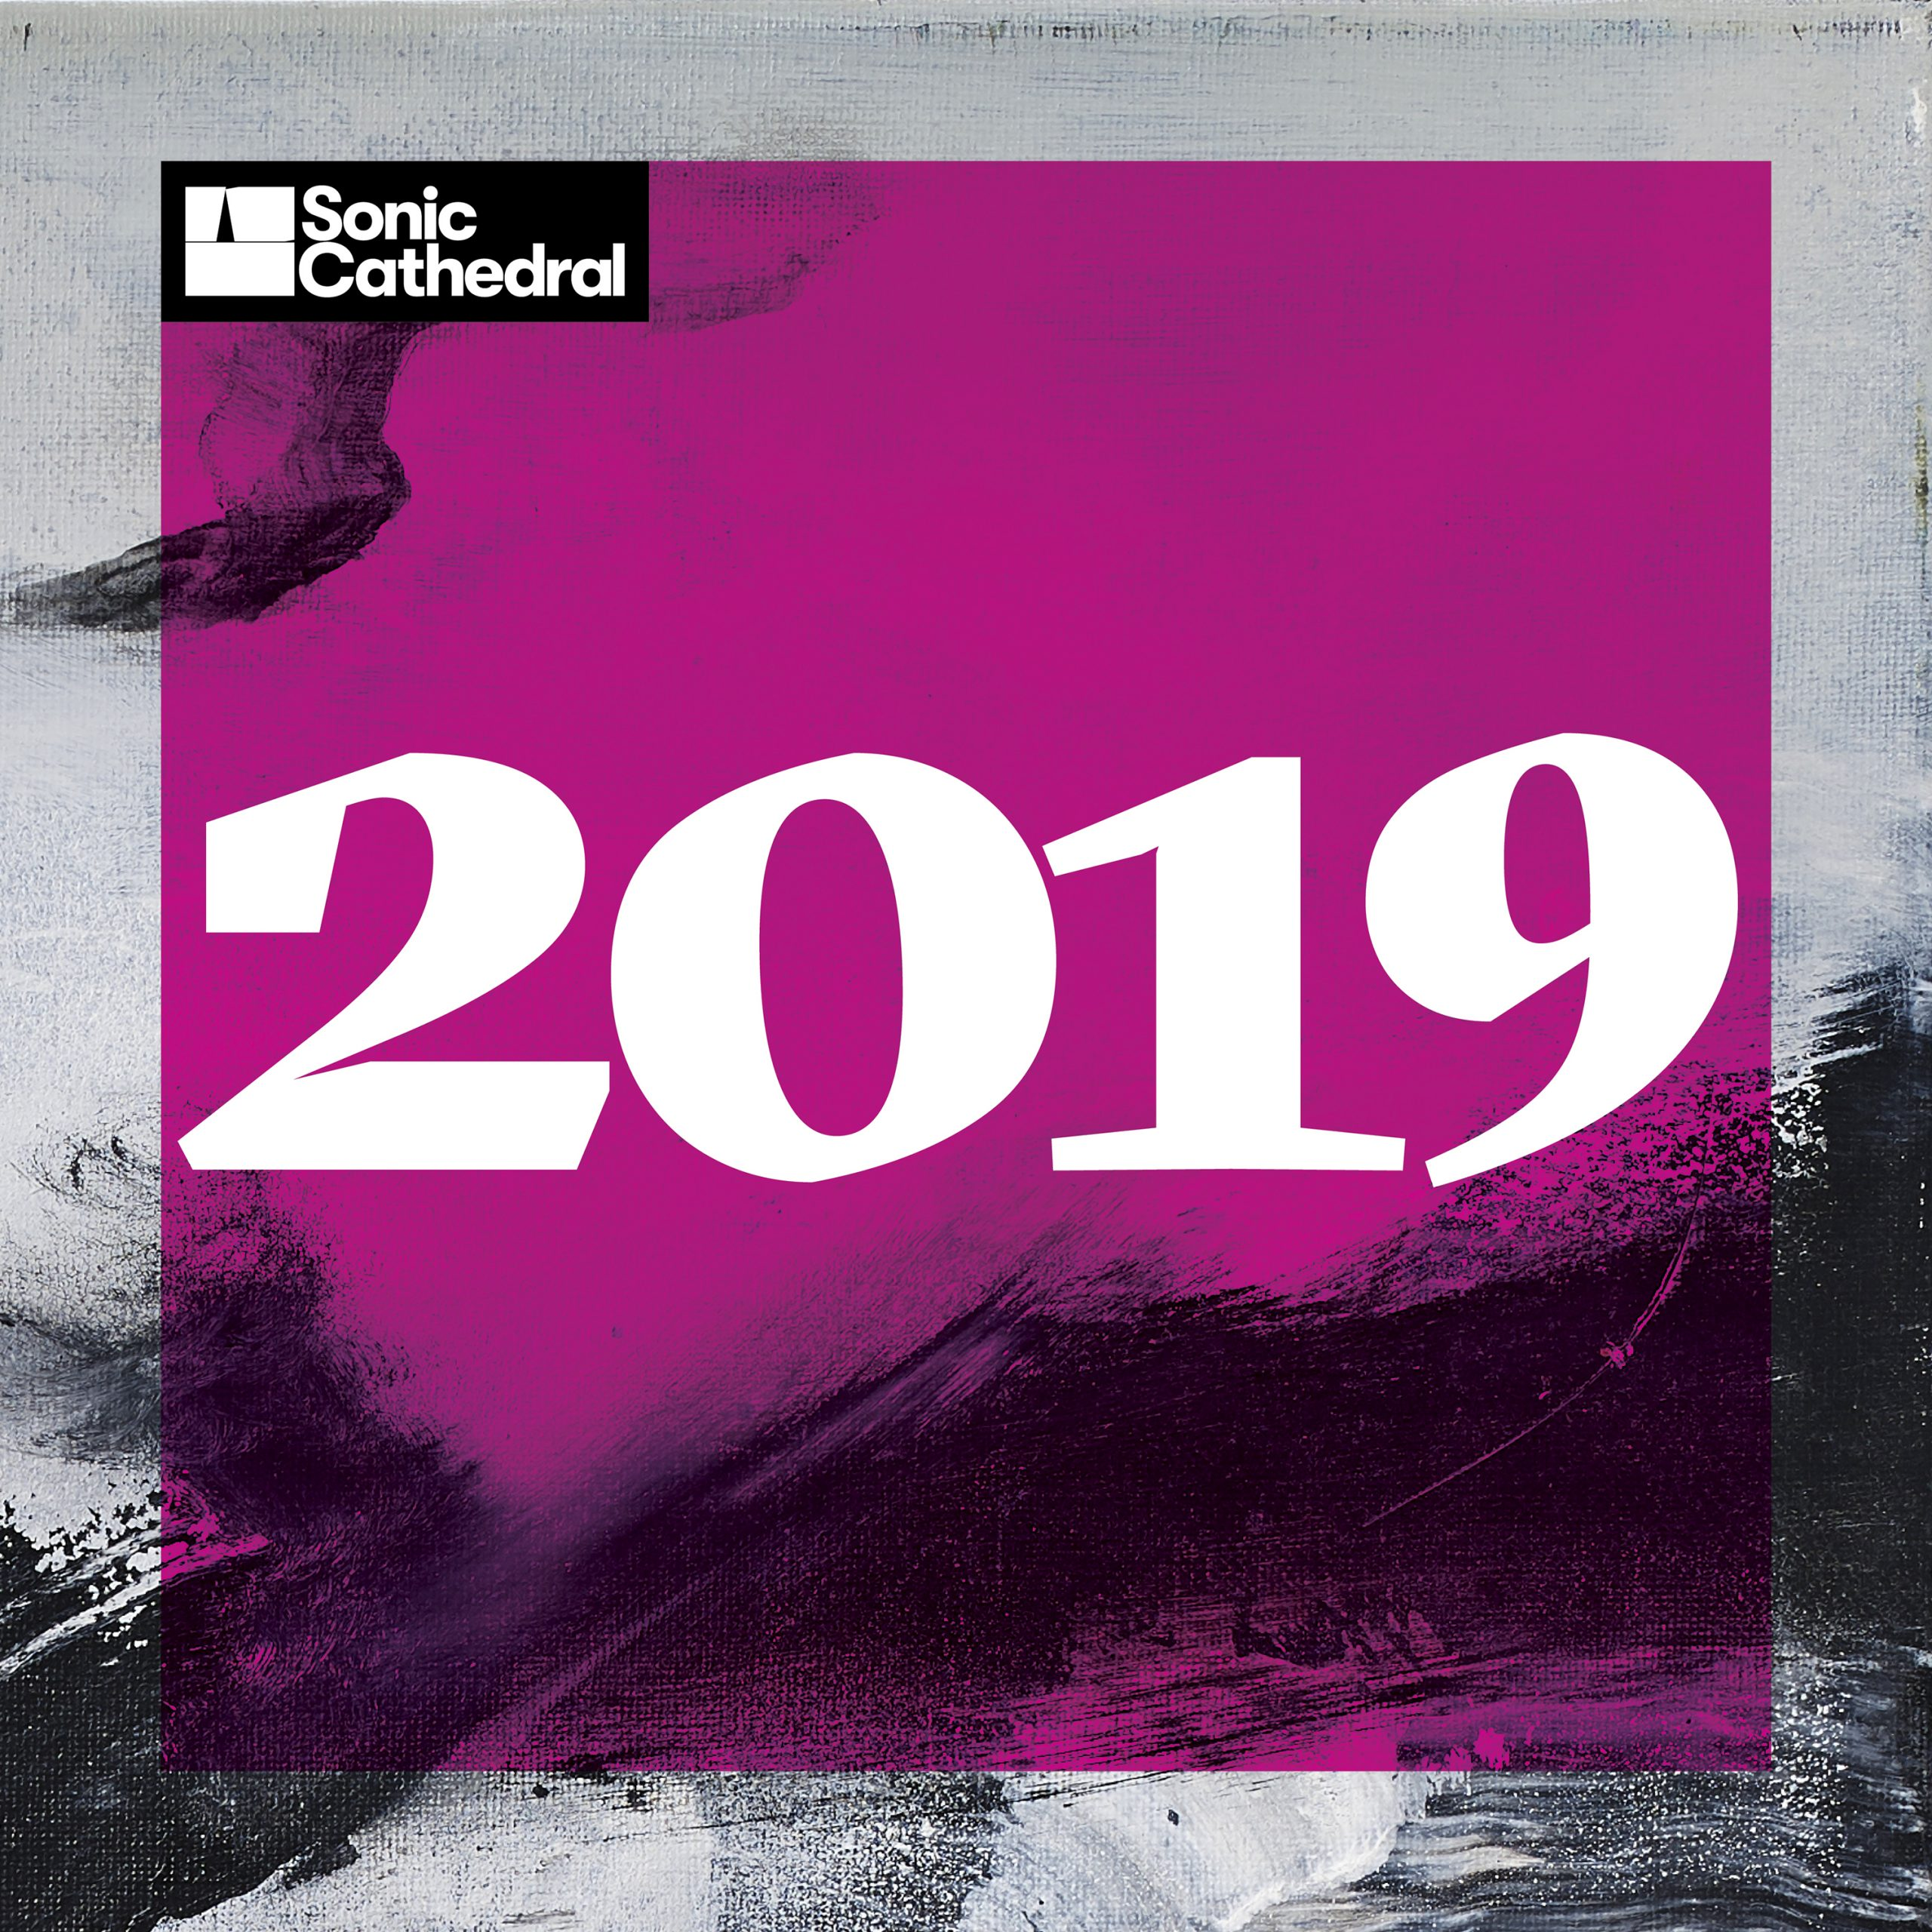 It was a very good year: a look at our highlights of 2019